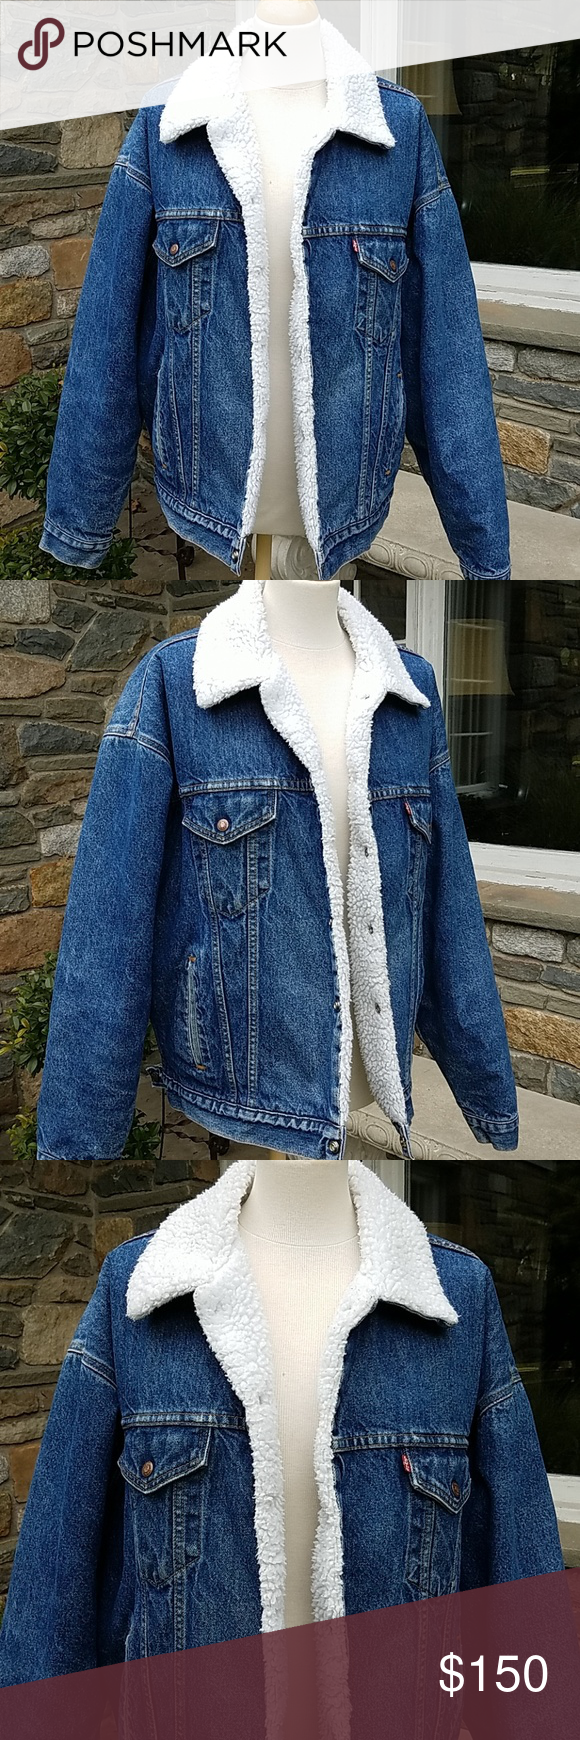 Levius vintage usa oversized sherpa jean jacket in my posh